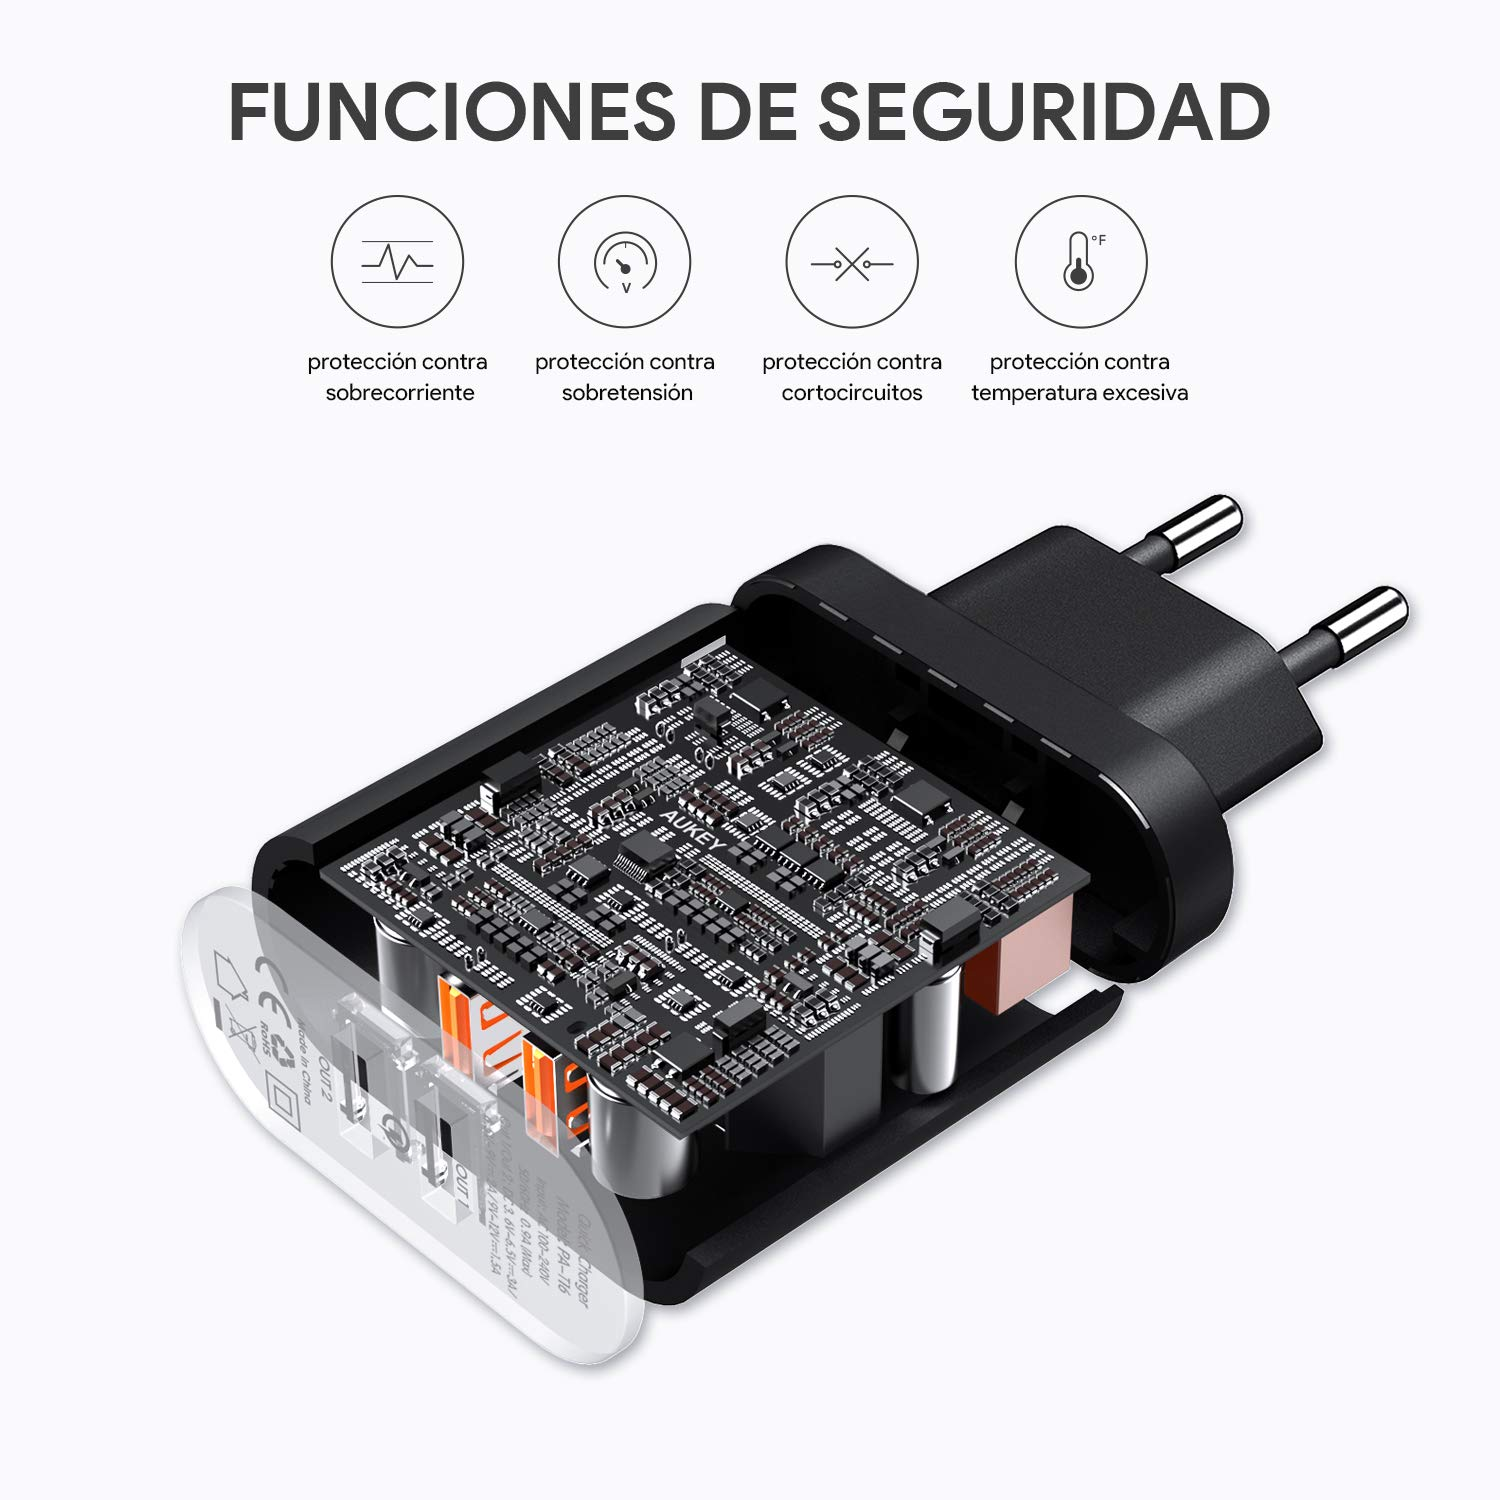 AUKEY Quick Charge 3.0 Cargador de Pared 39W Dual Puerto Cargador Móvil para Samsung Galaxy S8 / S8+/ Note 8, iPhone XS / XS Max / XR, iPad Pro / Air, ...